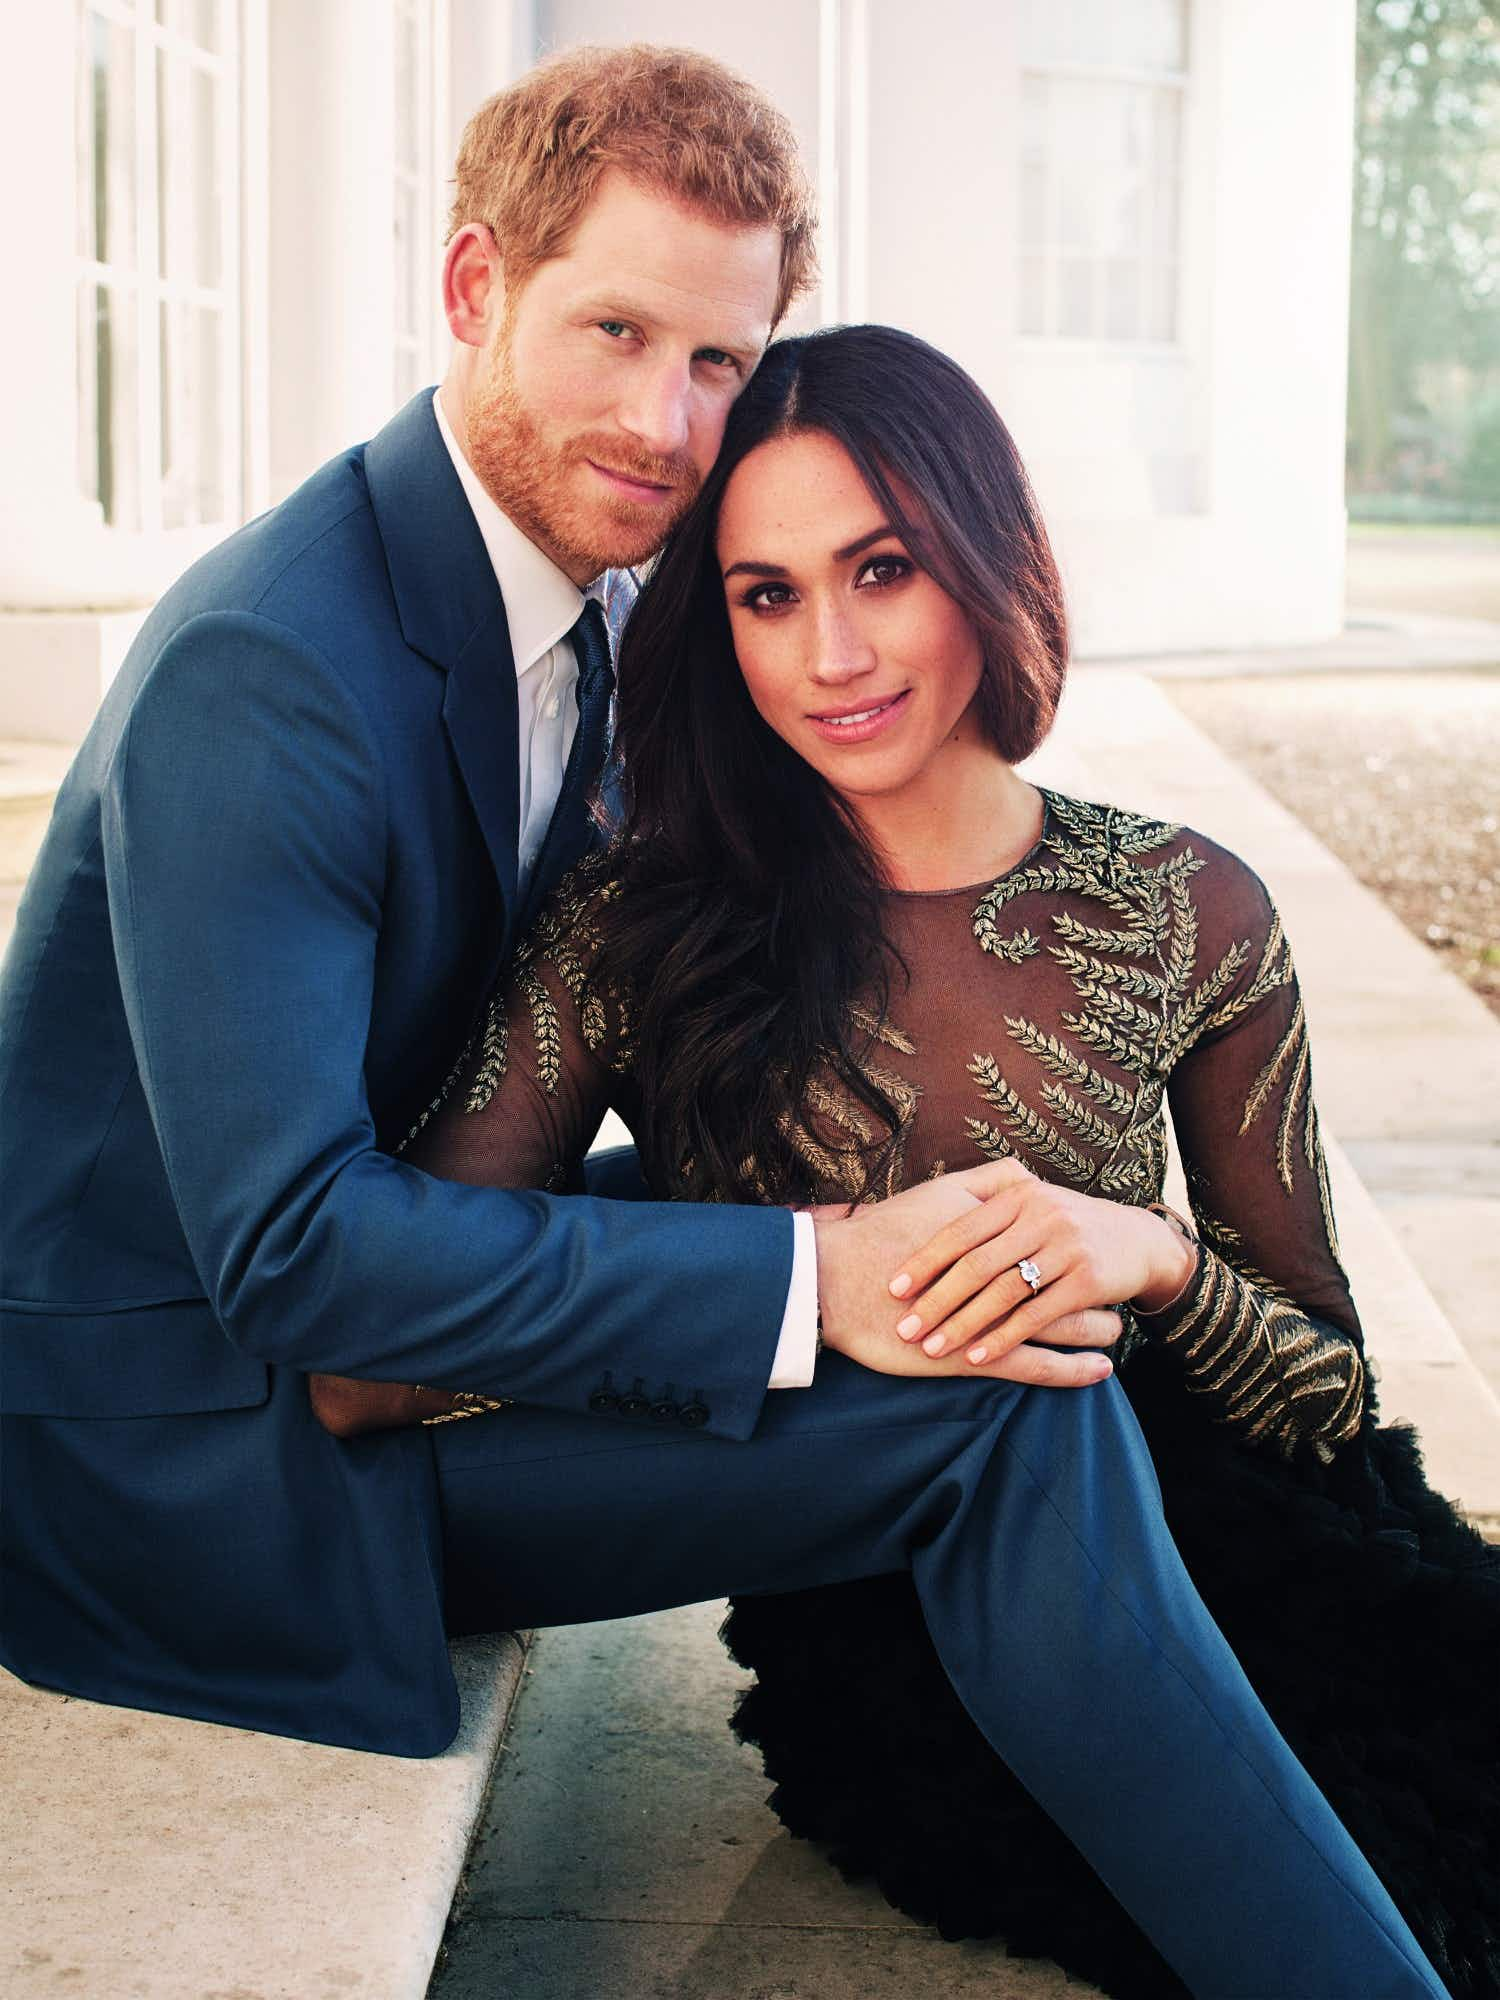 Plan a trip to the UK to see Prince Harry and Meghan Markle on their wedding day